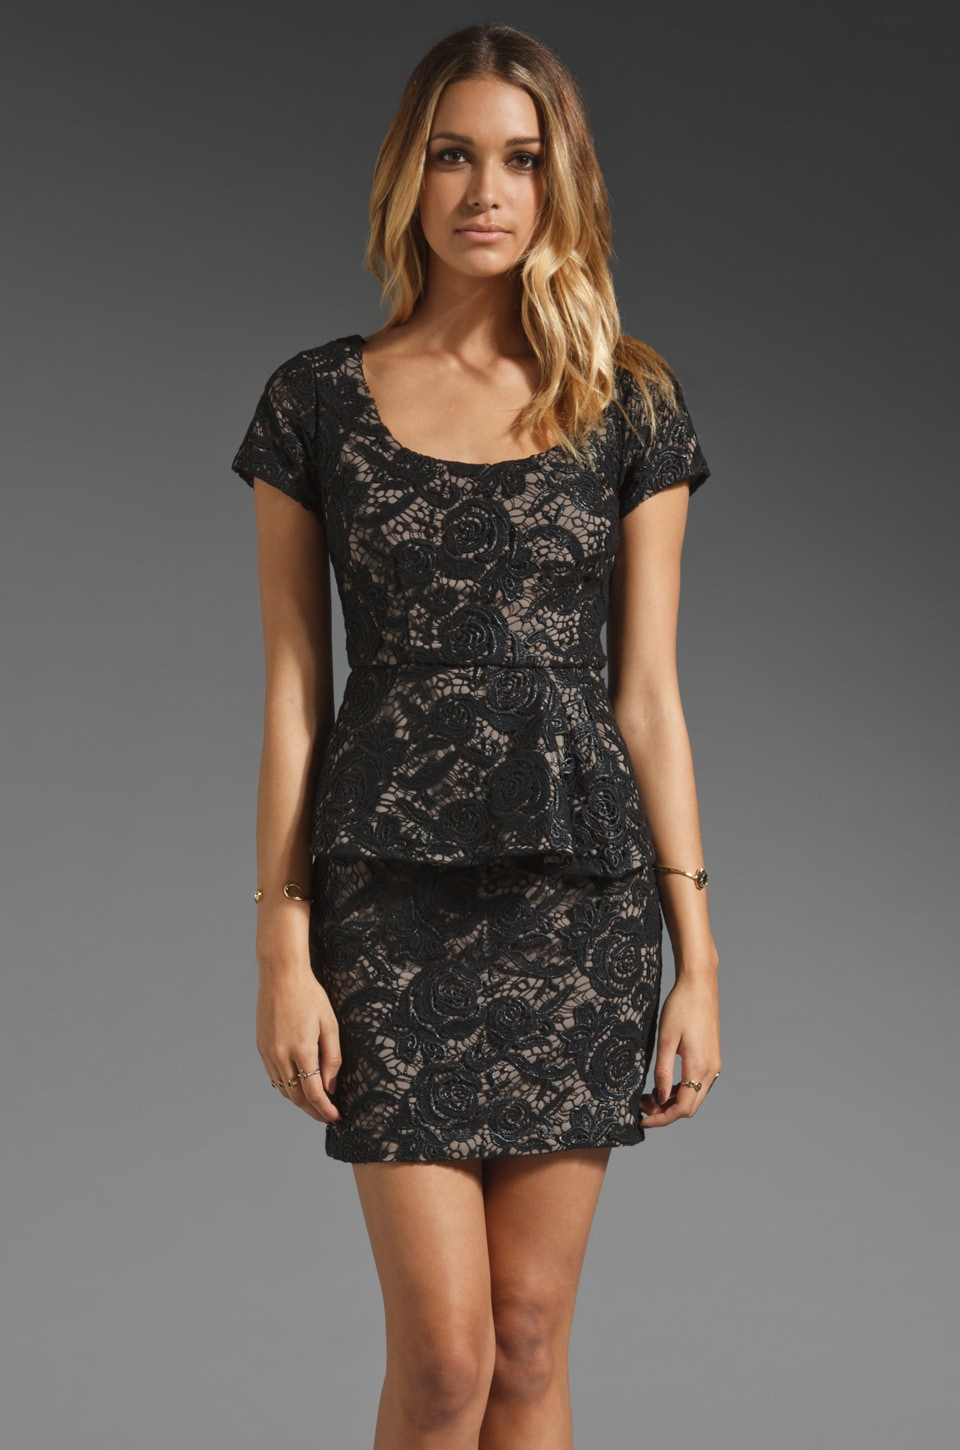 Tracy Reese Wide Awake Guipure Lace Peplum Shift Dress in Black